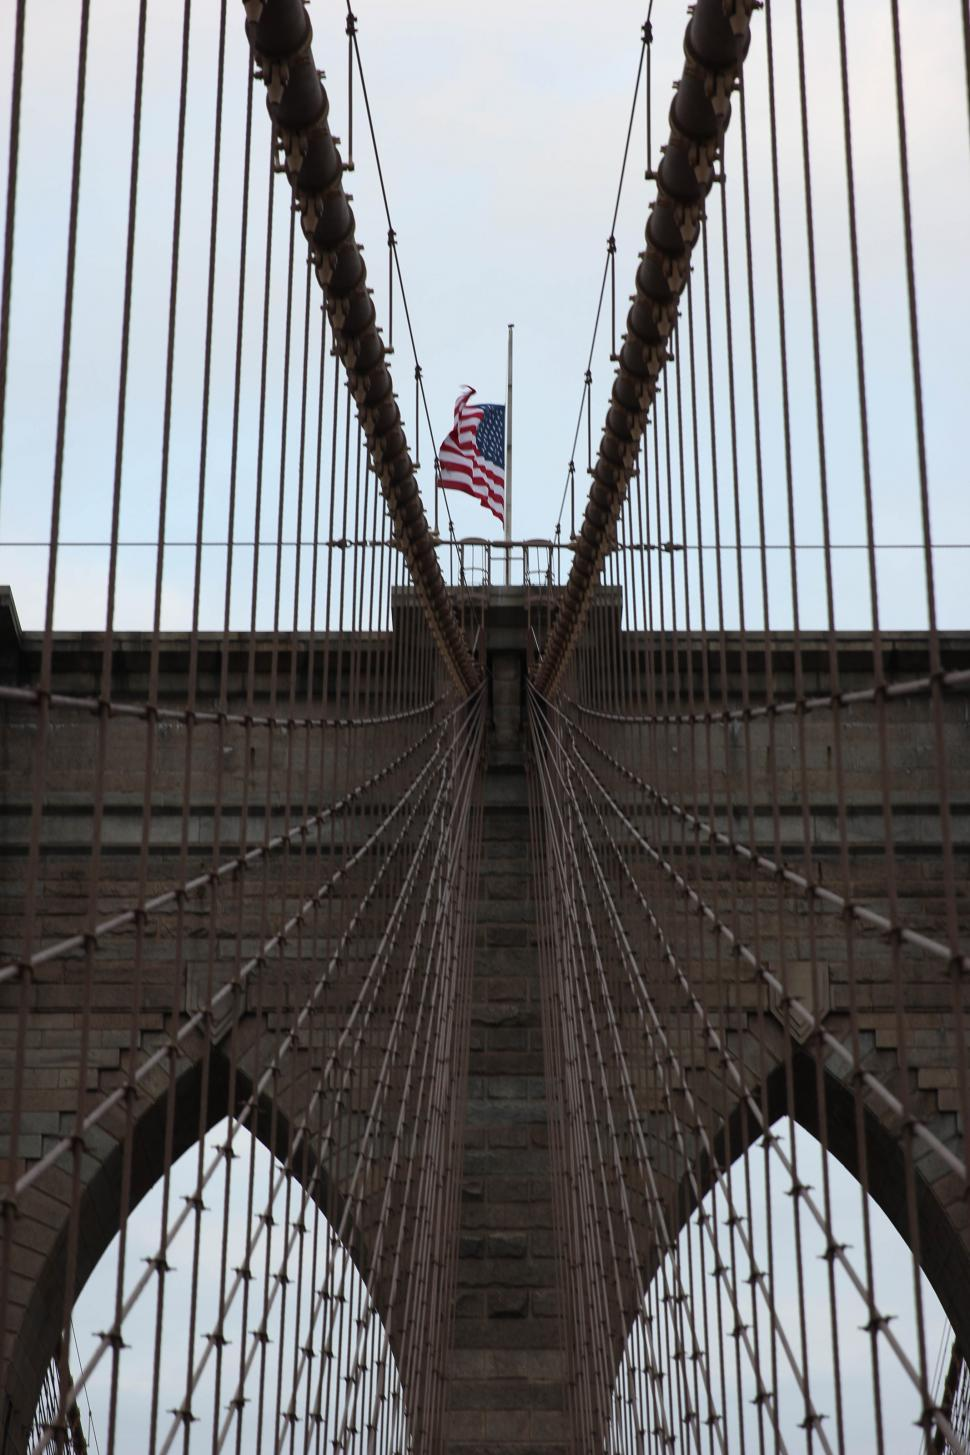 Download Free Stock HD Photo of American flag on a suspension bridge Online